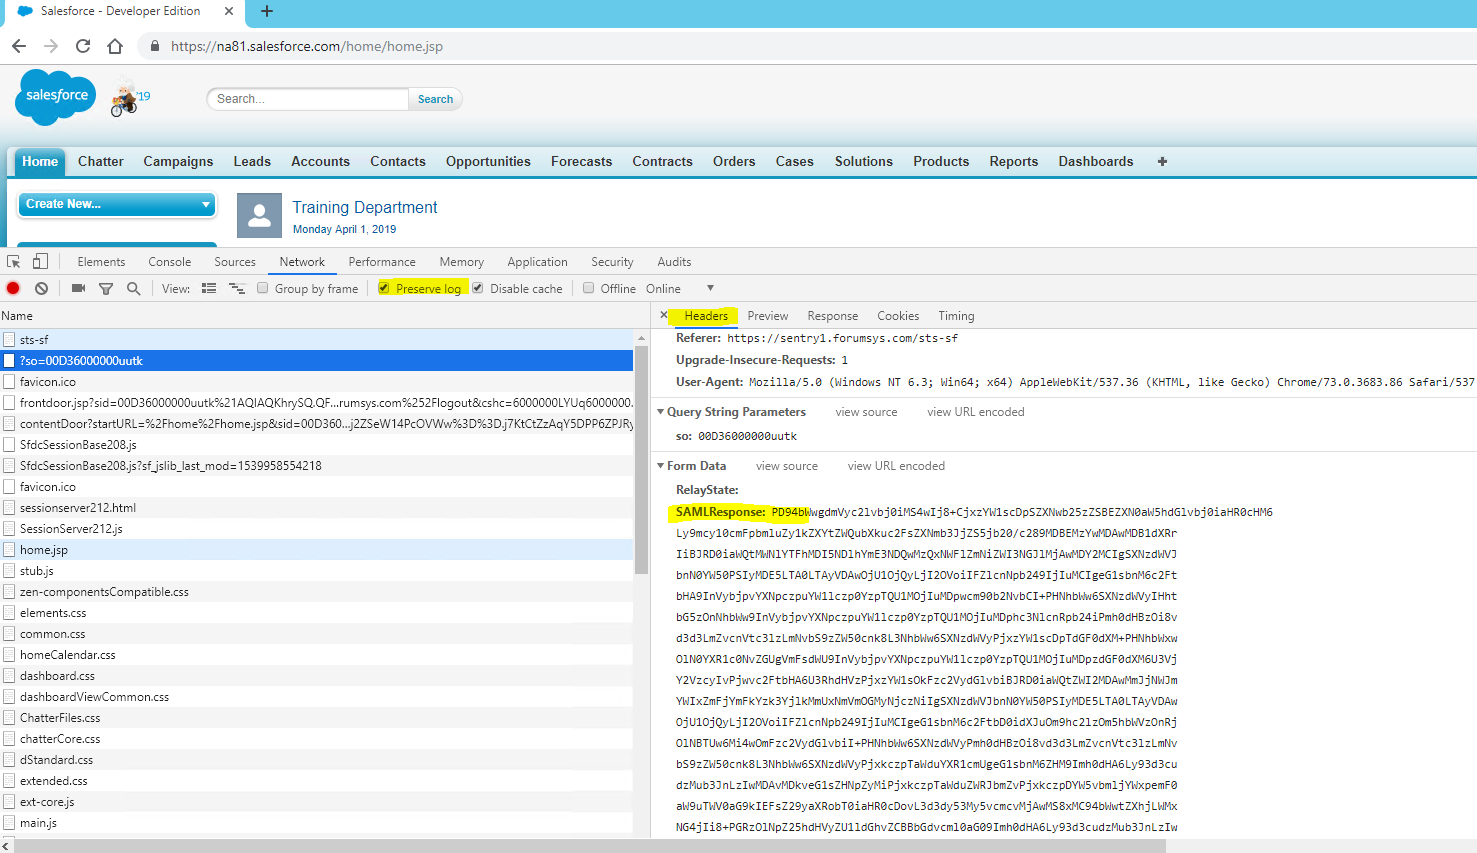 Troubleshooting SAML SSO - How to View a SAML Response with